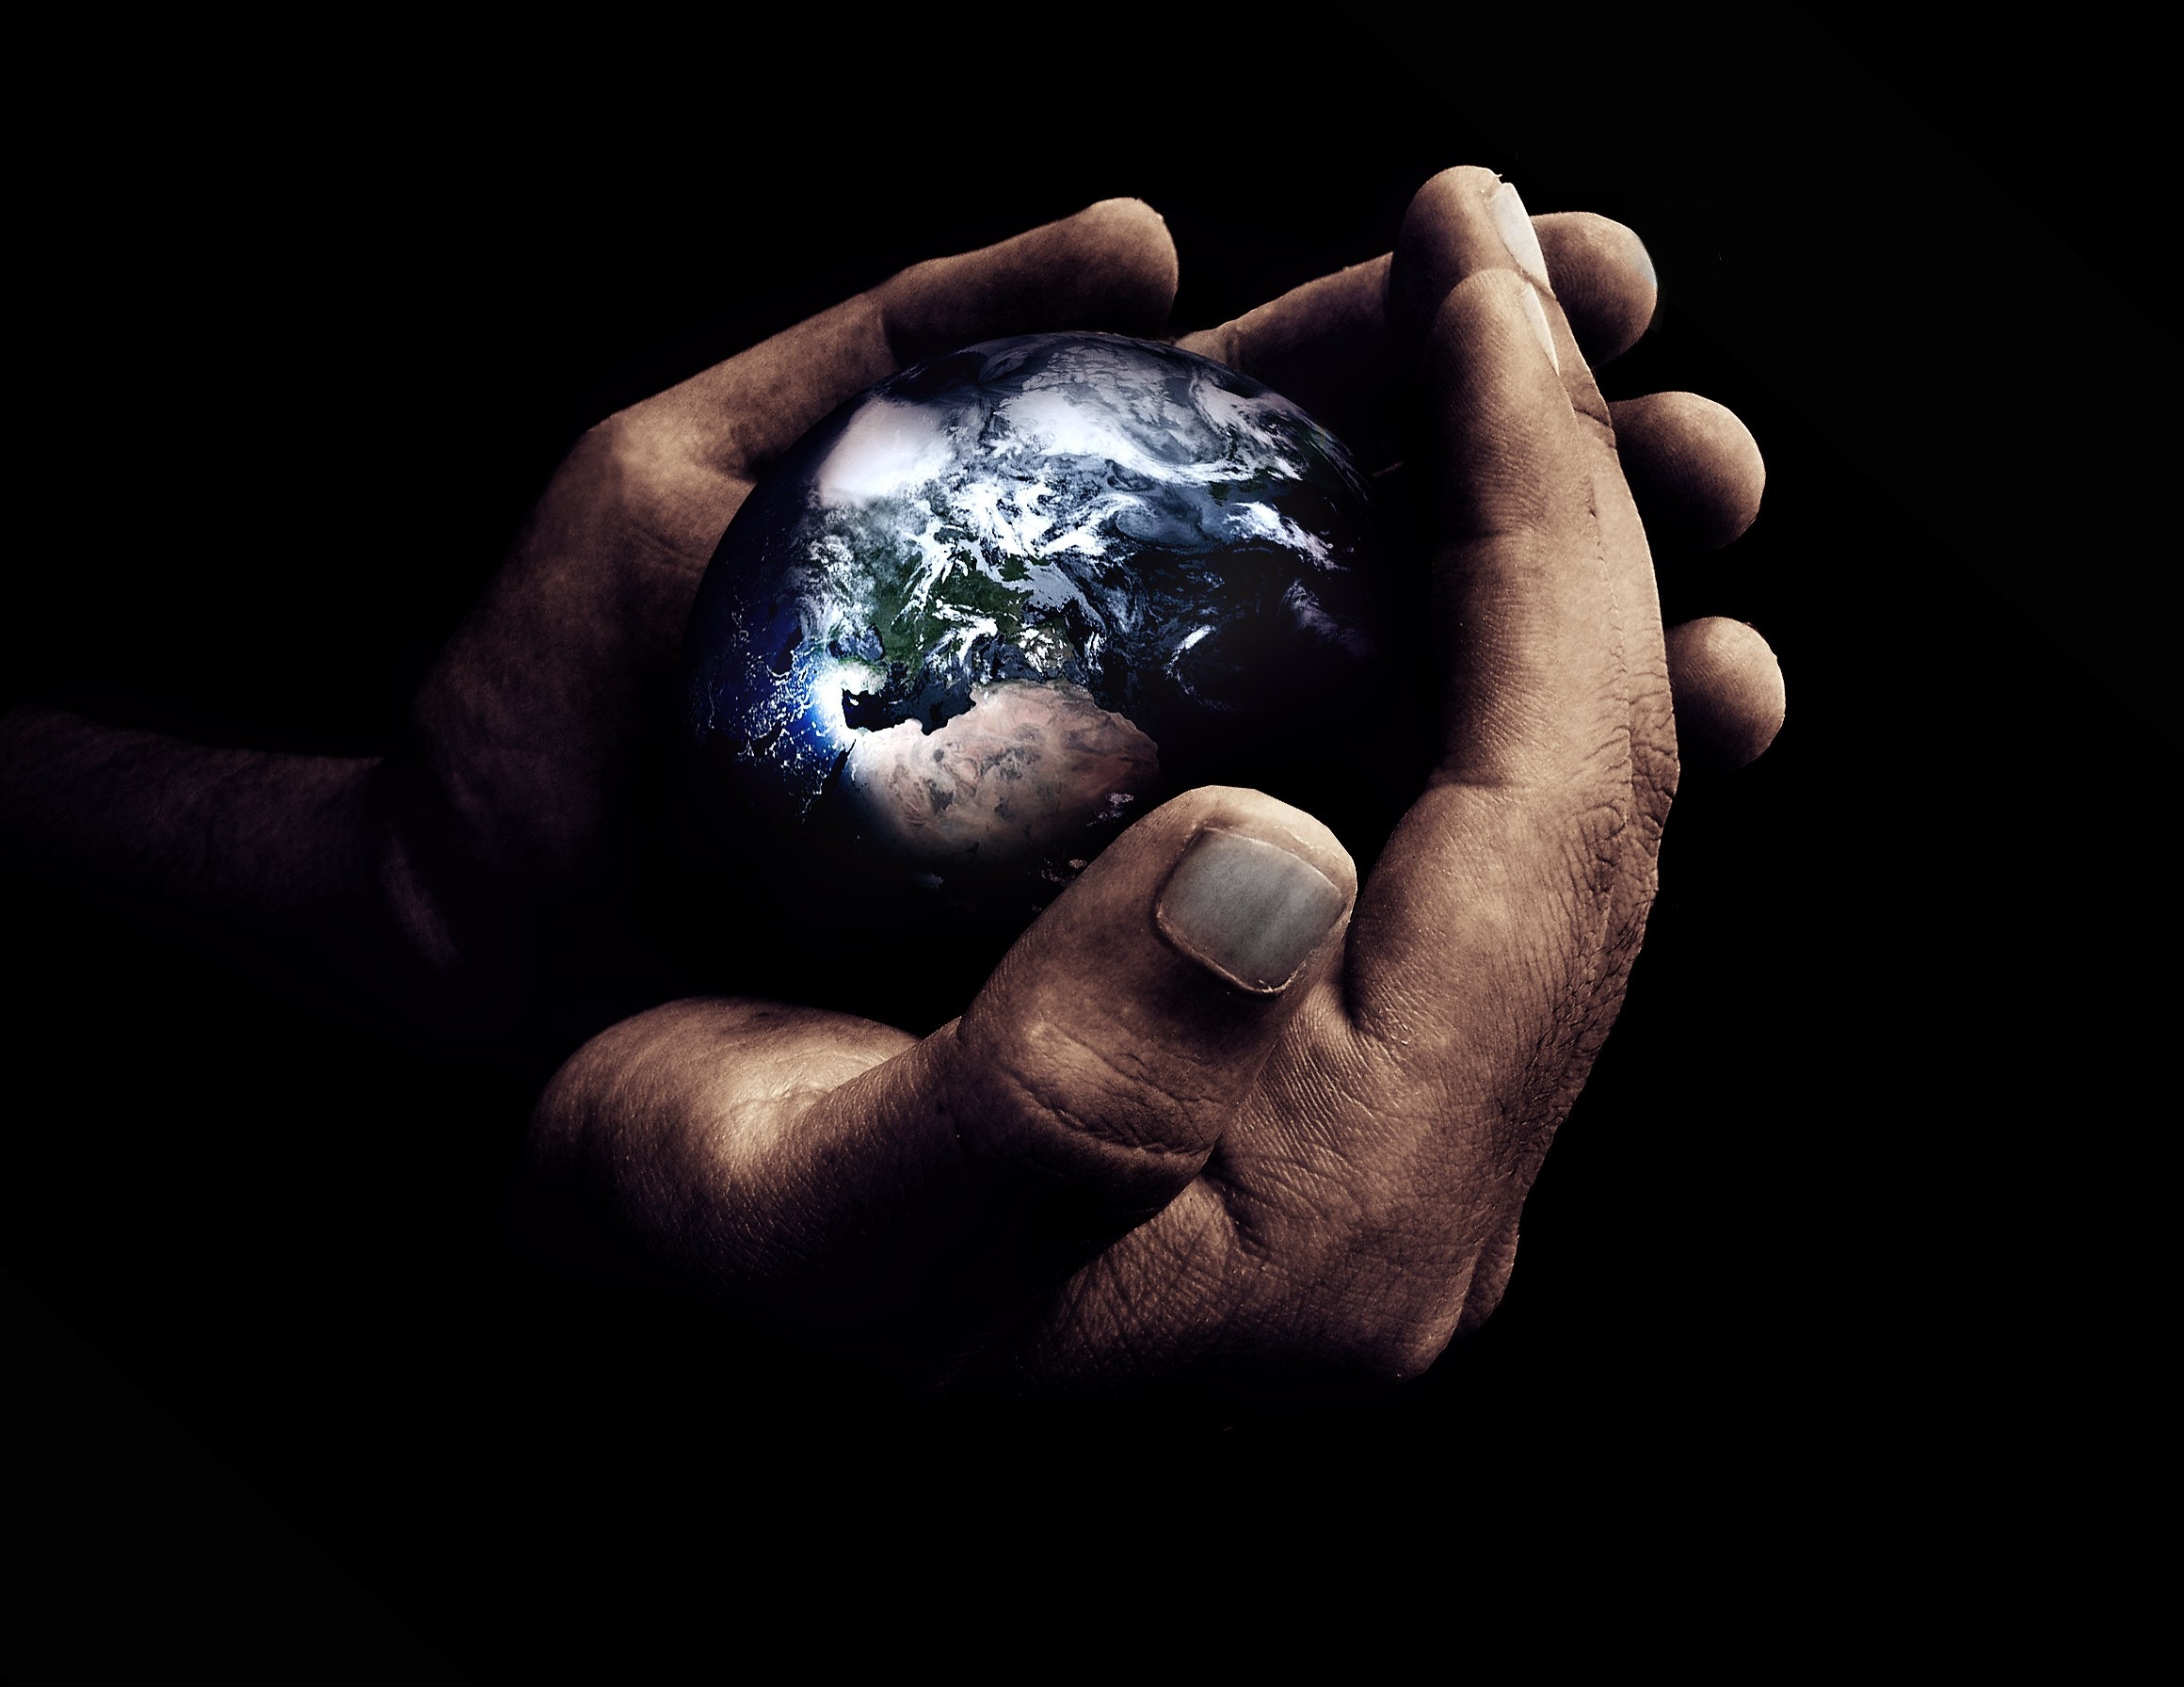 135103 download wallpaper Dark, Hands, Planet, Palms, Palm screensavers and pictures for free